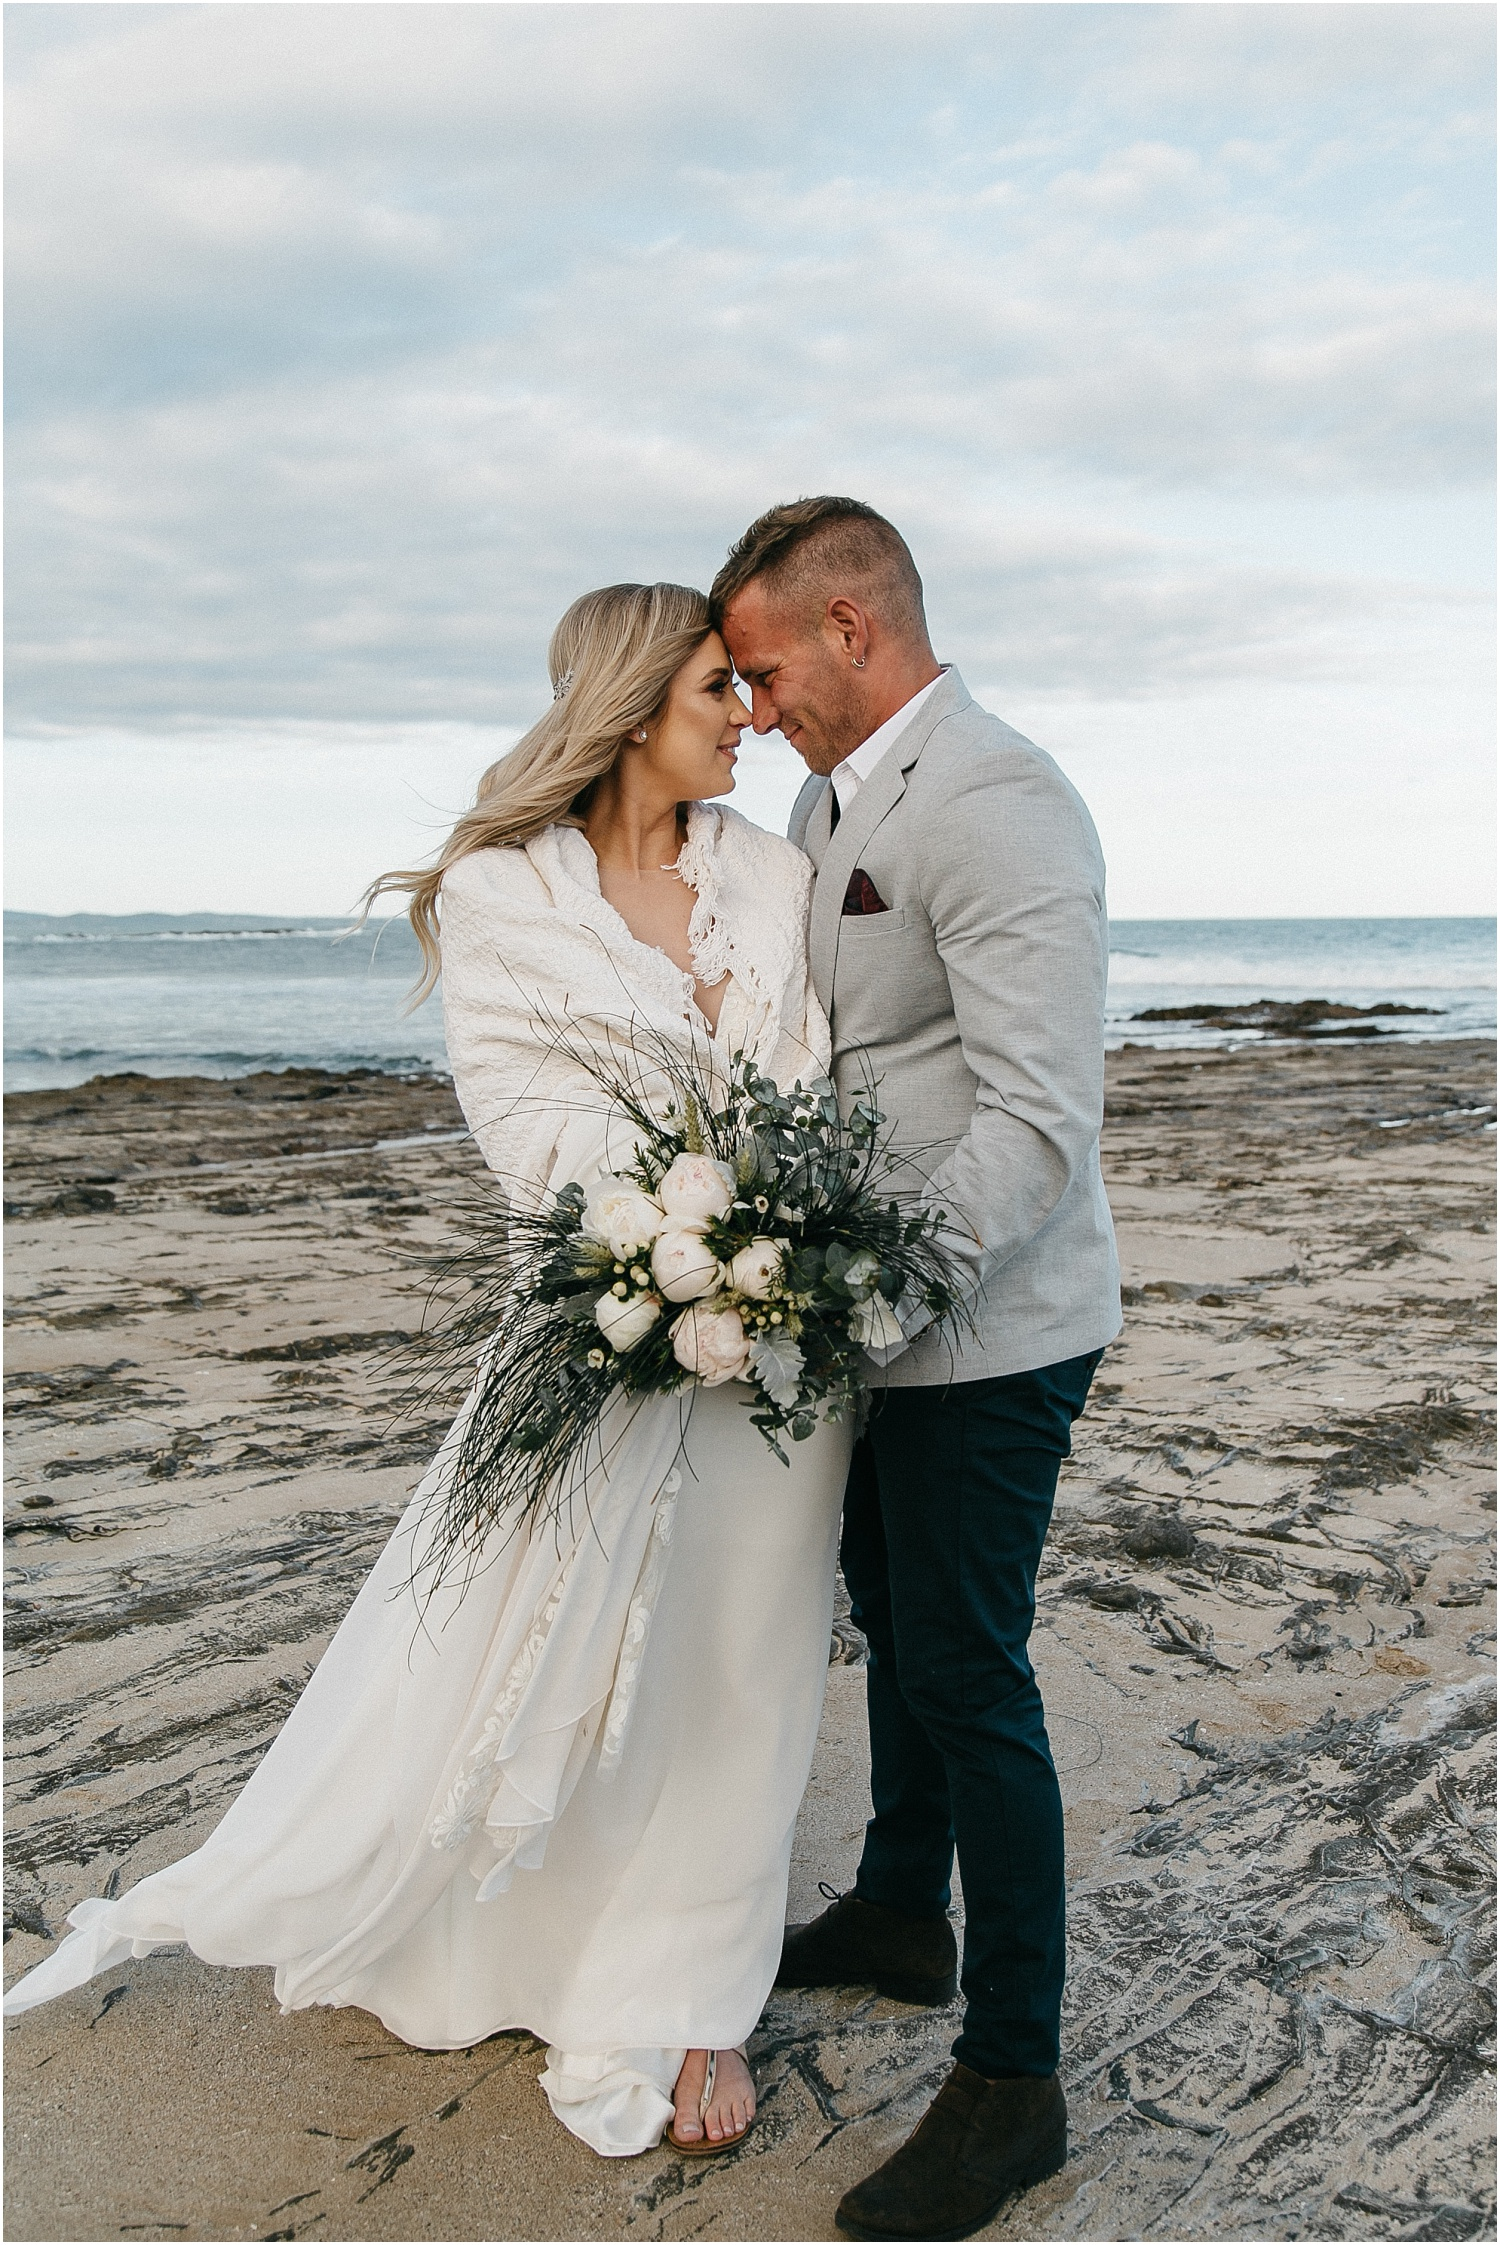 Renee and Ash's real elopement in Lorne on the Great Ocean Roadwith the ceremony at erskin falls._0100.jpg